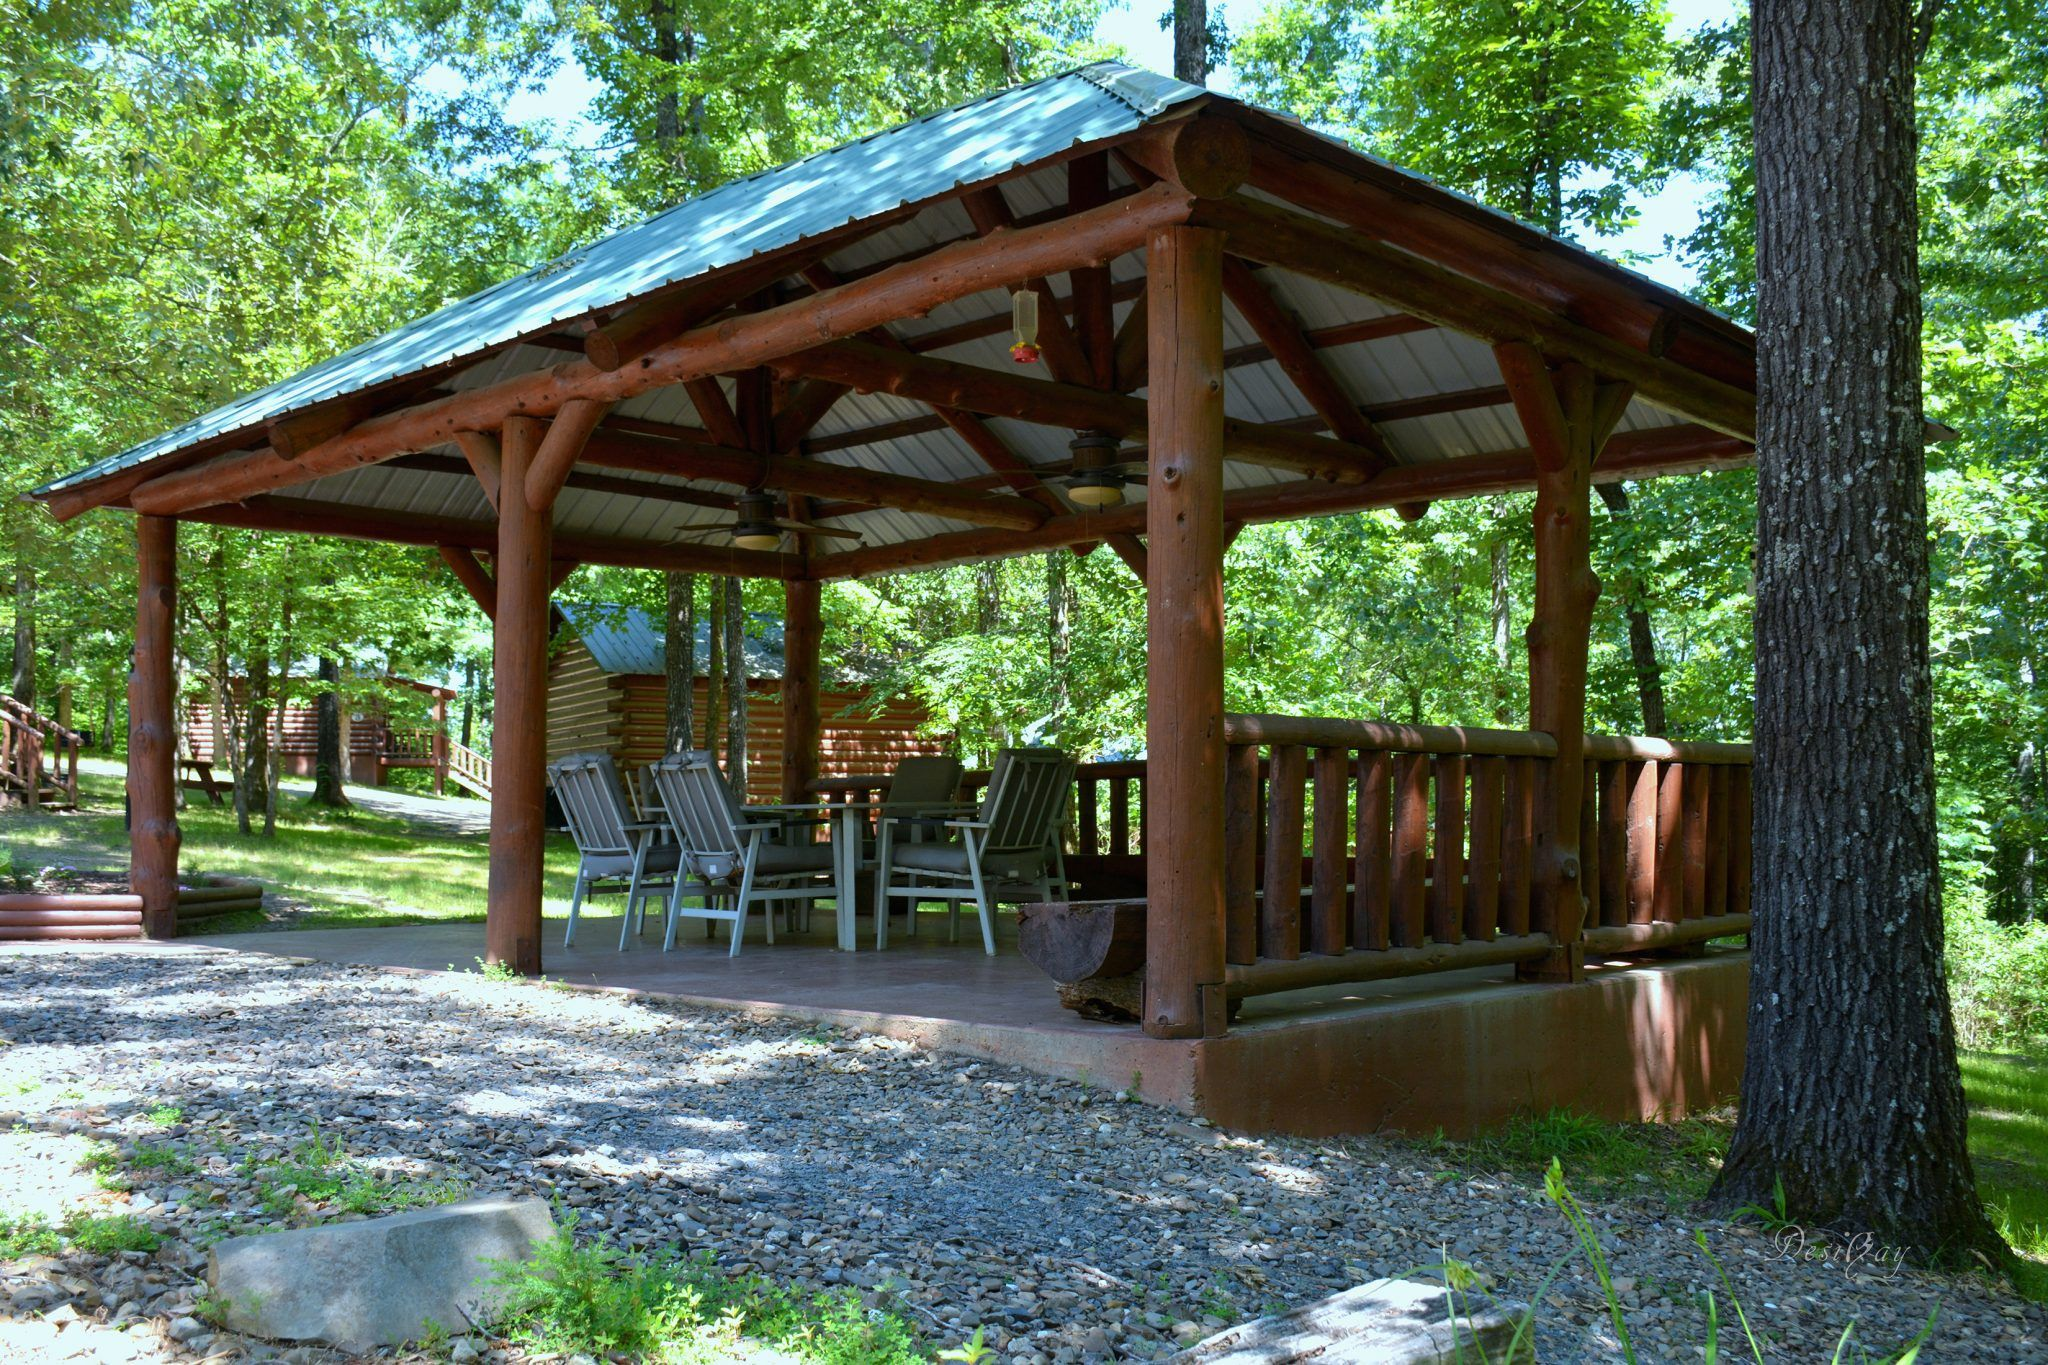 Wilderness Lakefront Resort Broken Bow Cabins Pavilion By The Swimming Pool Broken Bow Lake Lake Cabins Broken Bow